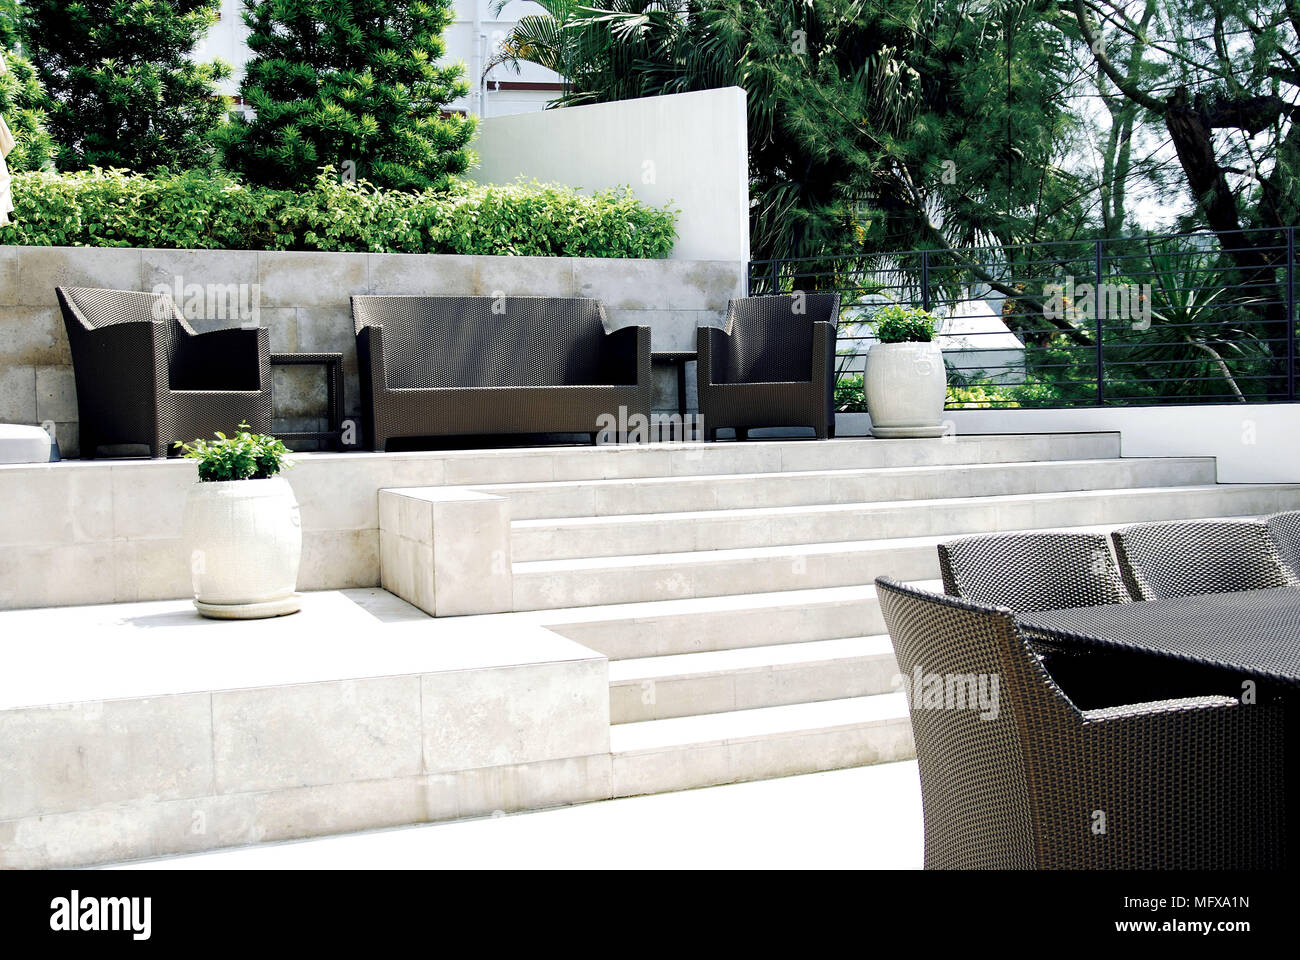 Gepflasterte Terrasse On The Level Stockfotos And On The Level Bilder Alamy